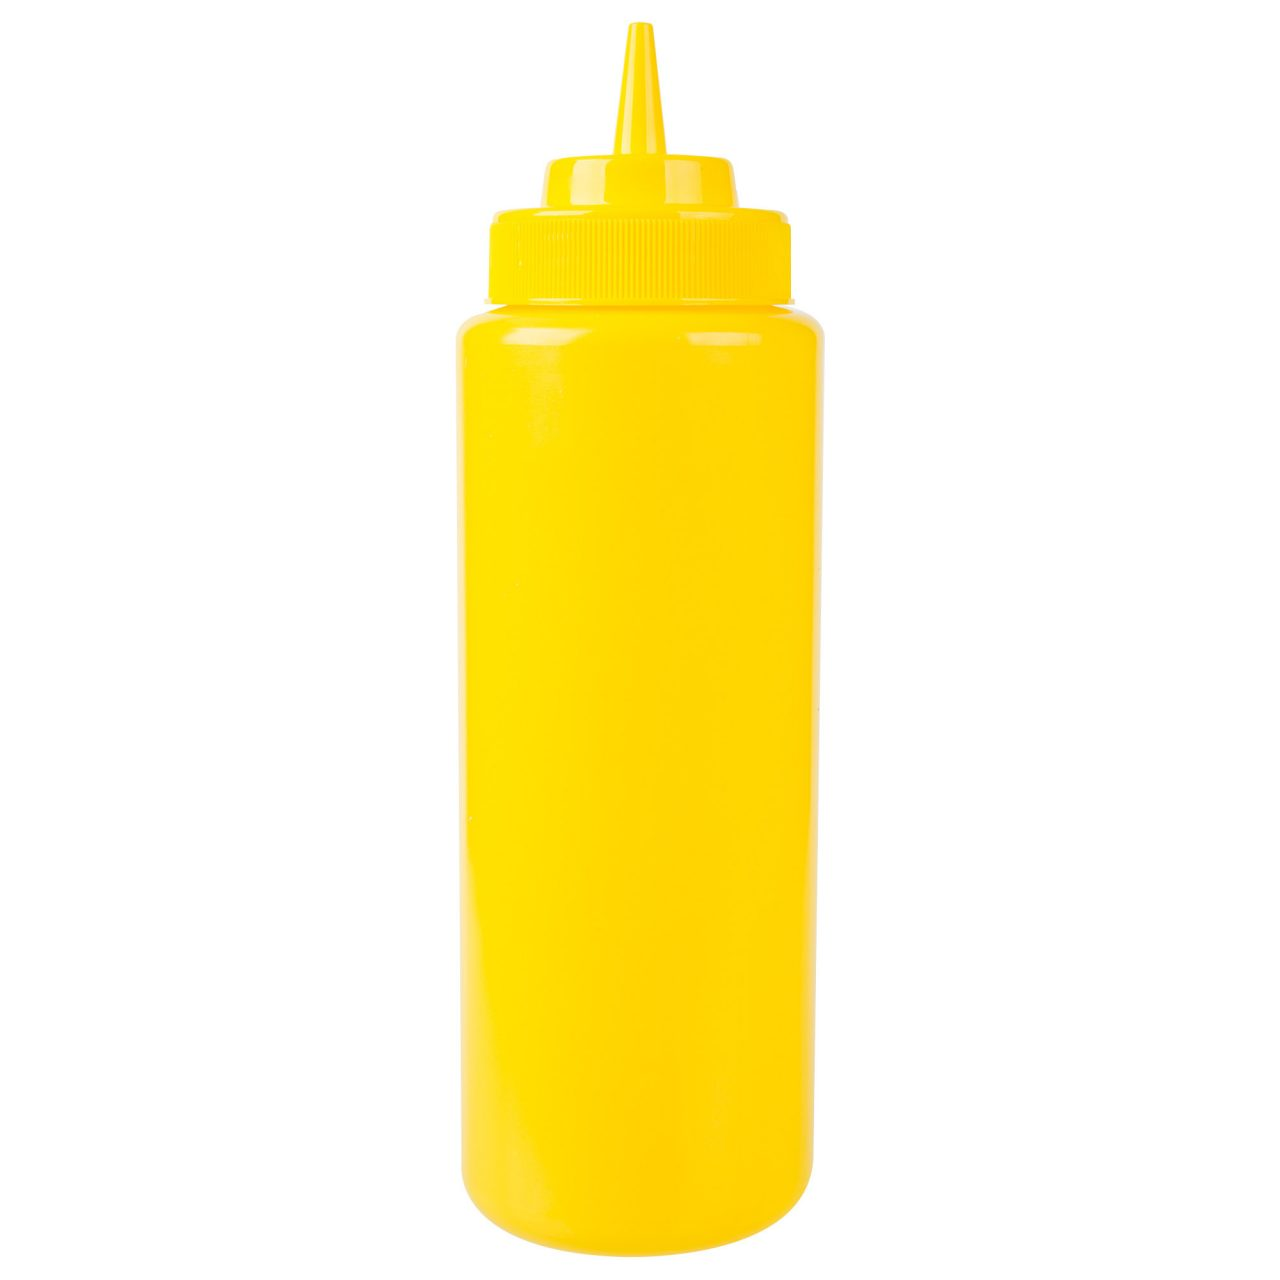 KH Plastic Squeeze Bottle Yellow